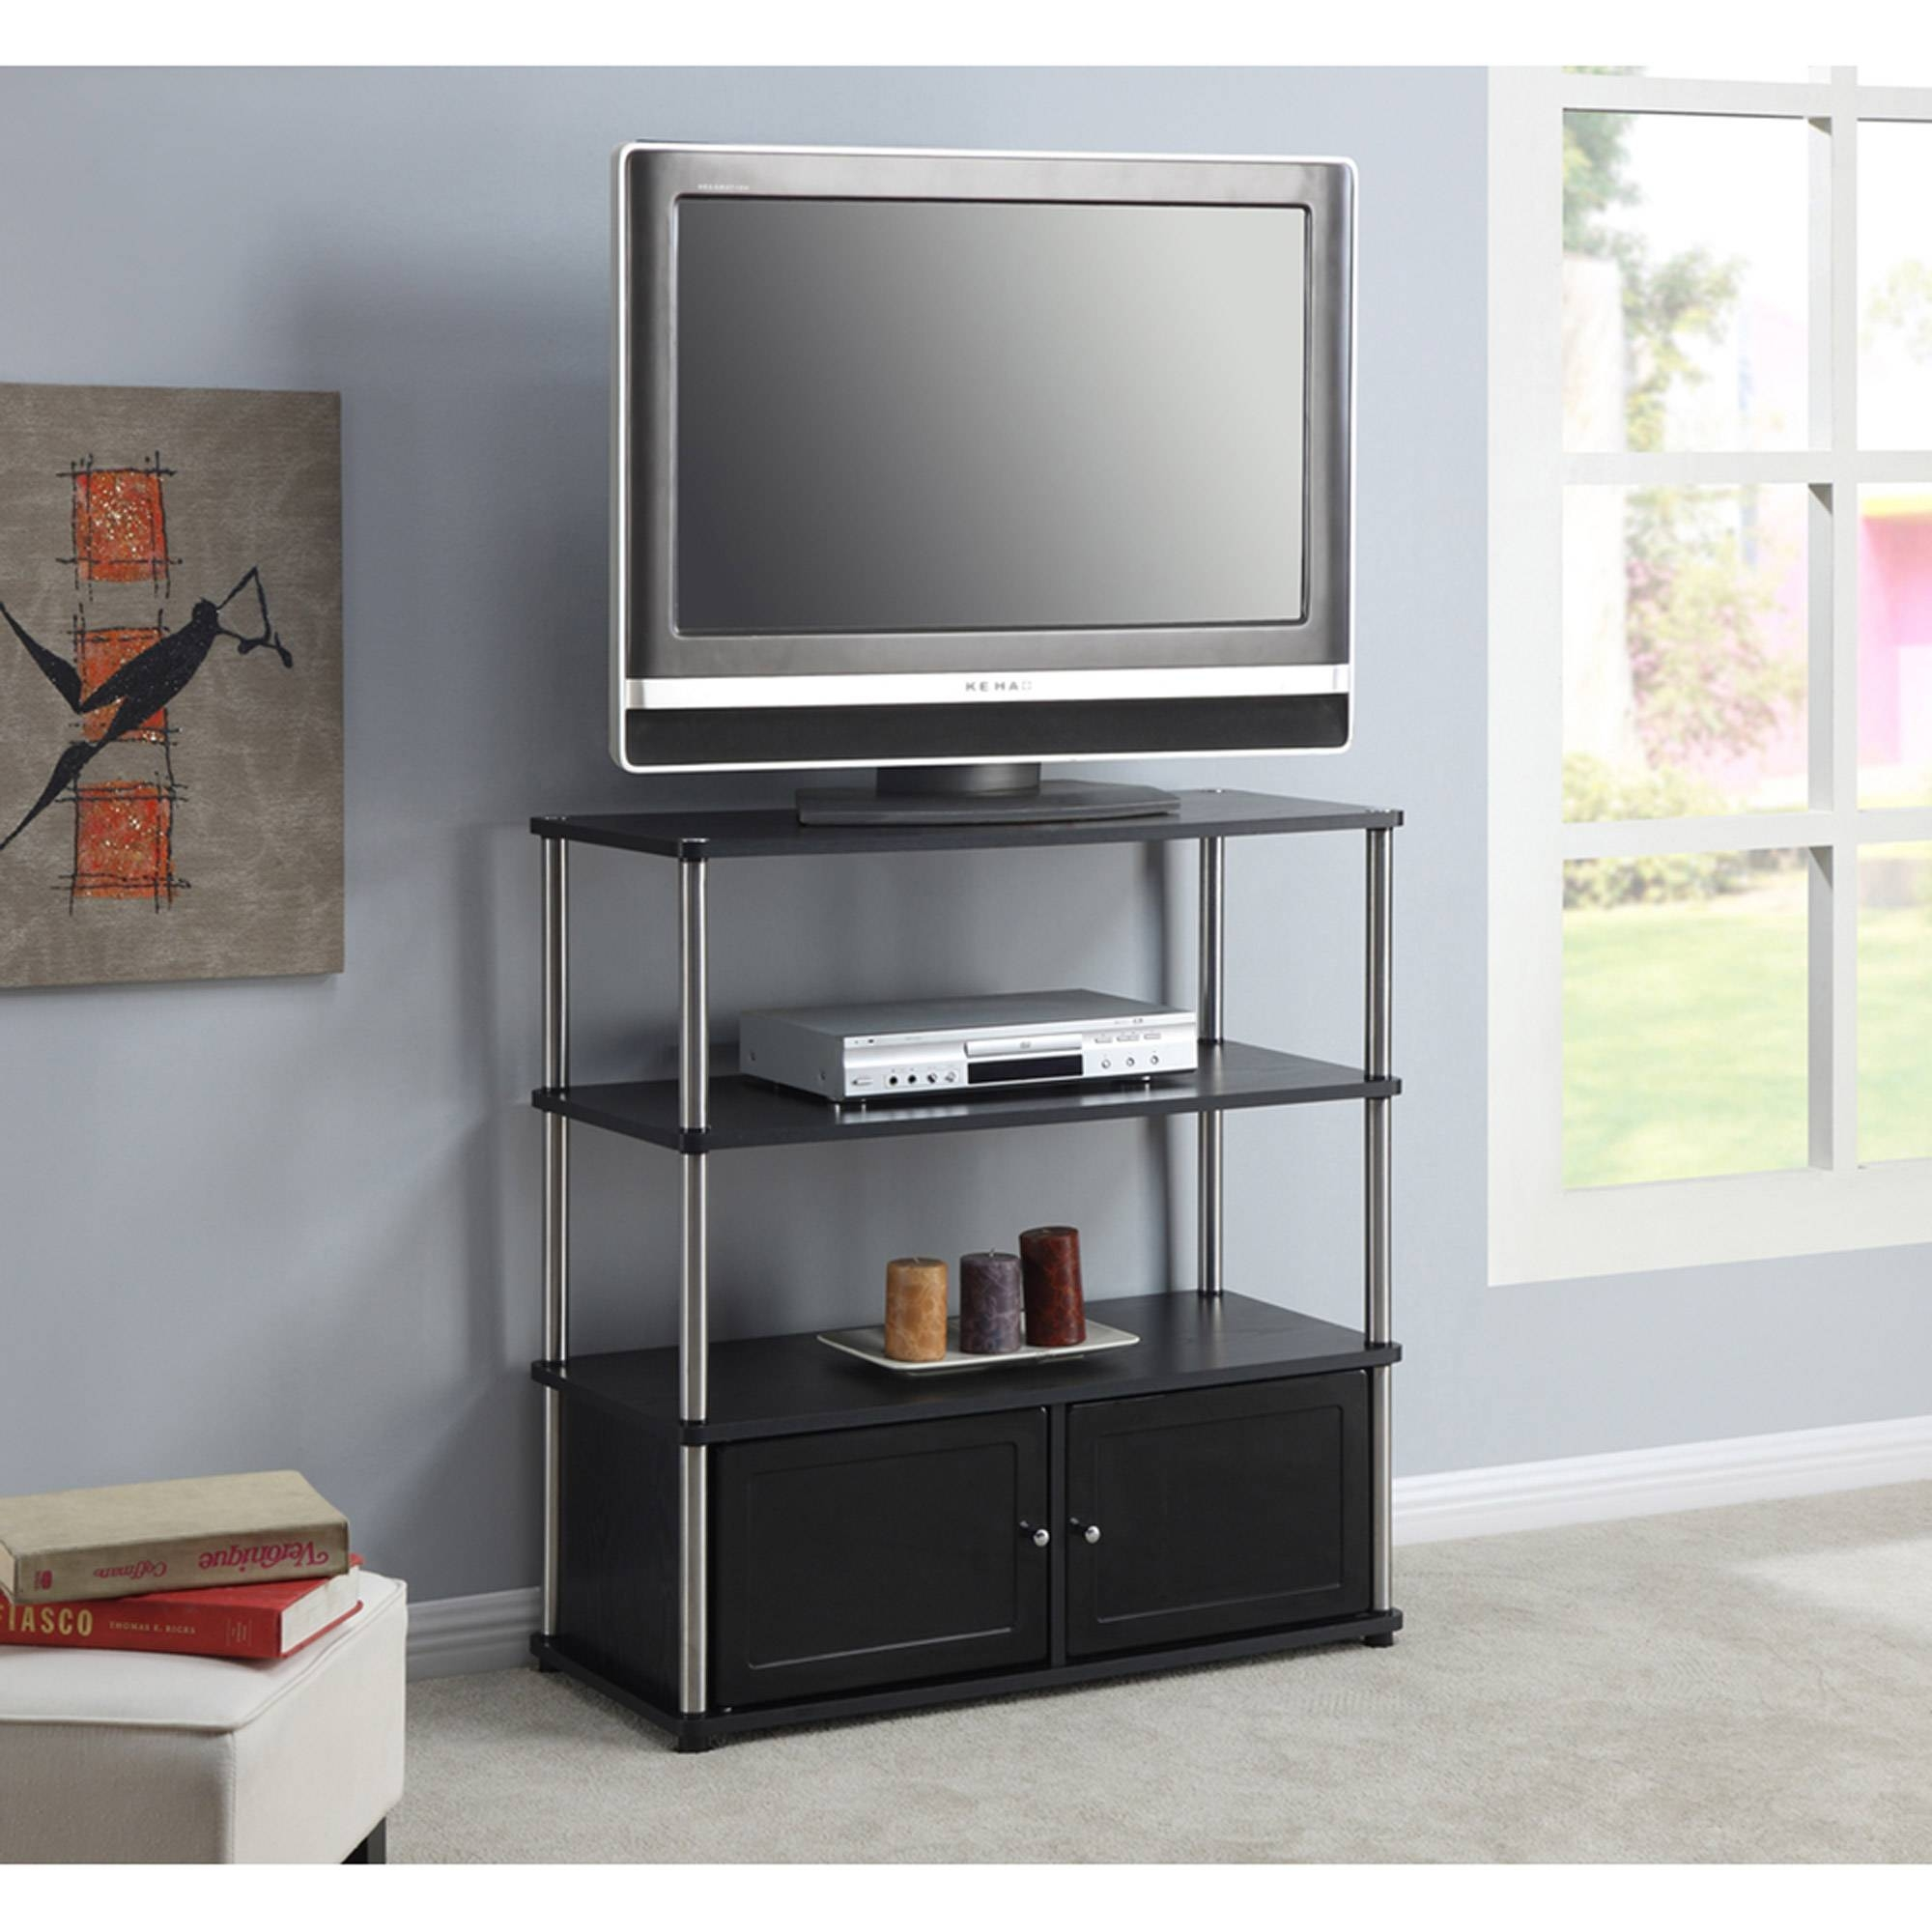 Bedroom : Tv Stand For 65 Inch Tv Wooden Tv Stand For 50 Inch Tv In Skinny Tv Stands (View 2 of 15)